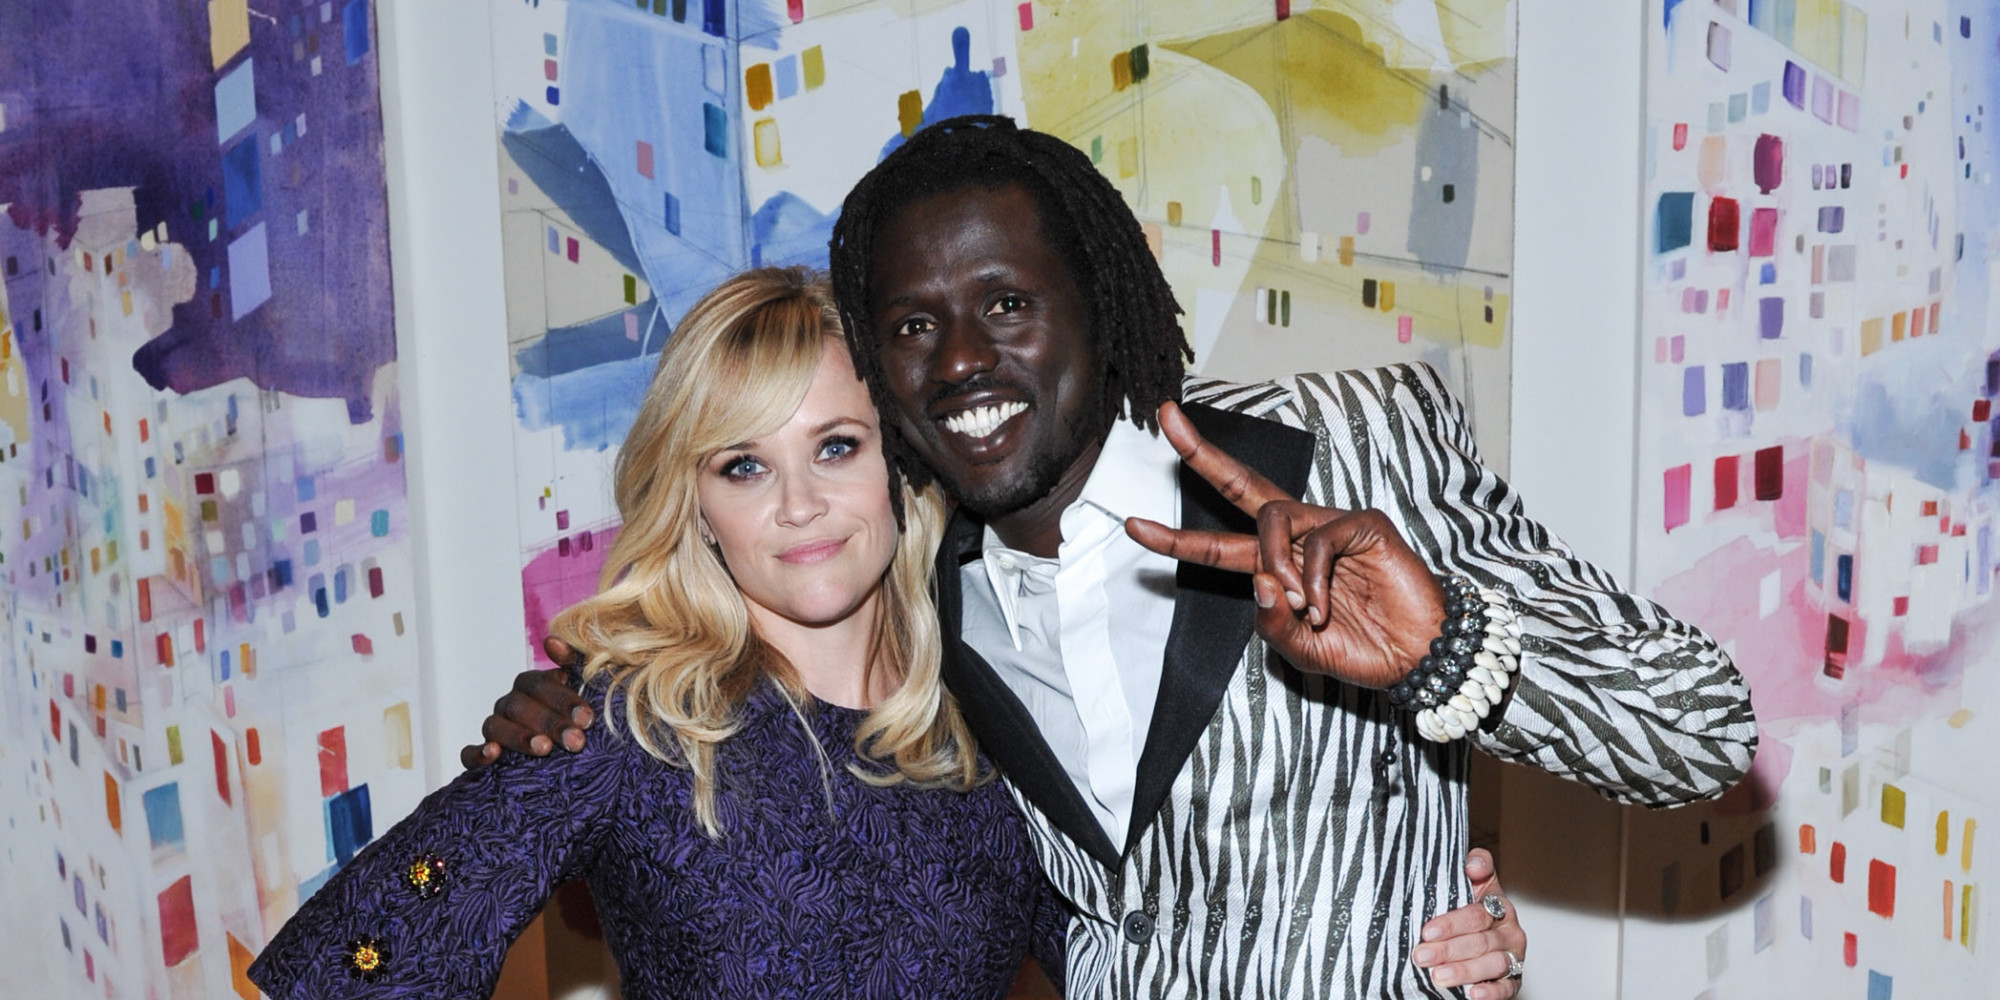 emmanuel jal movie